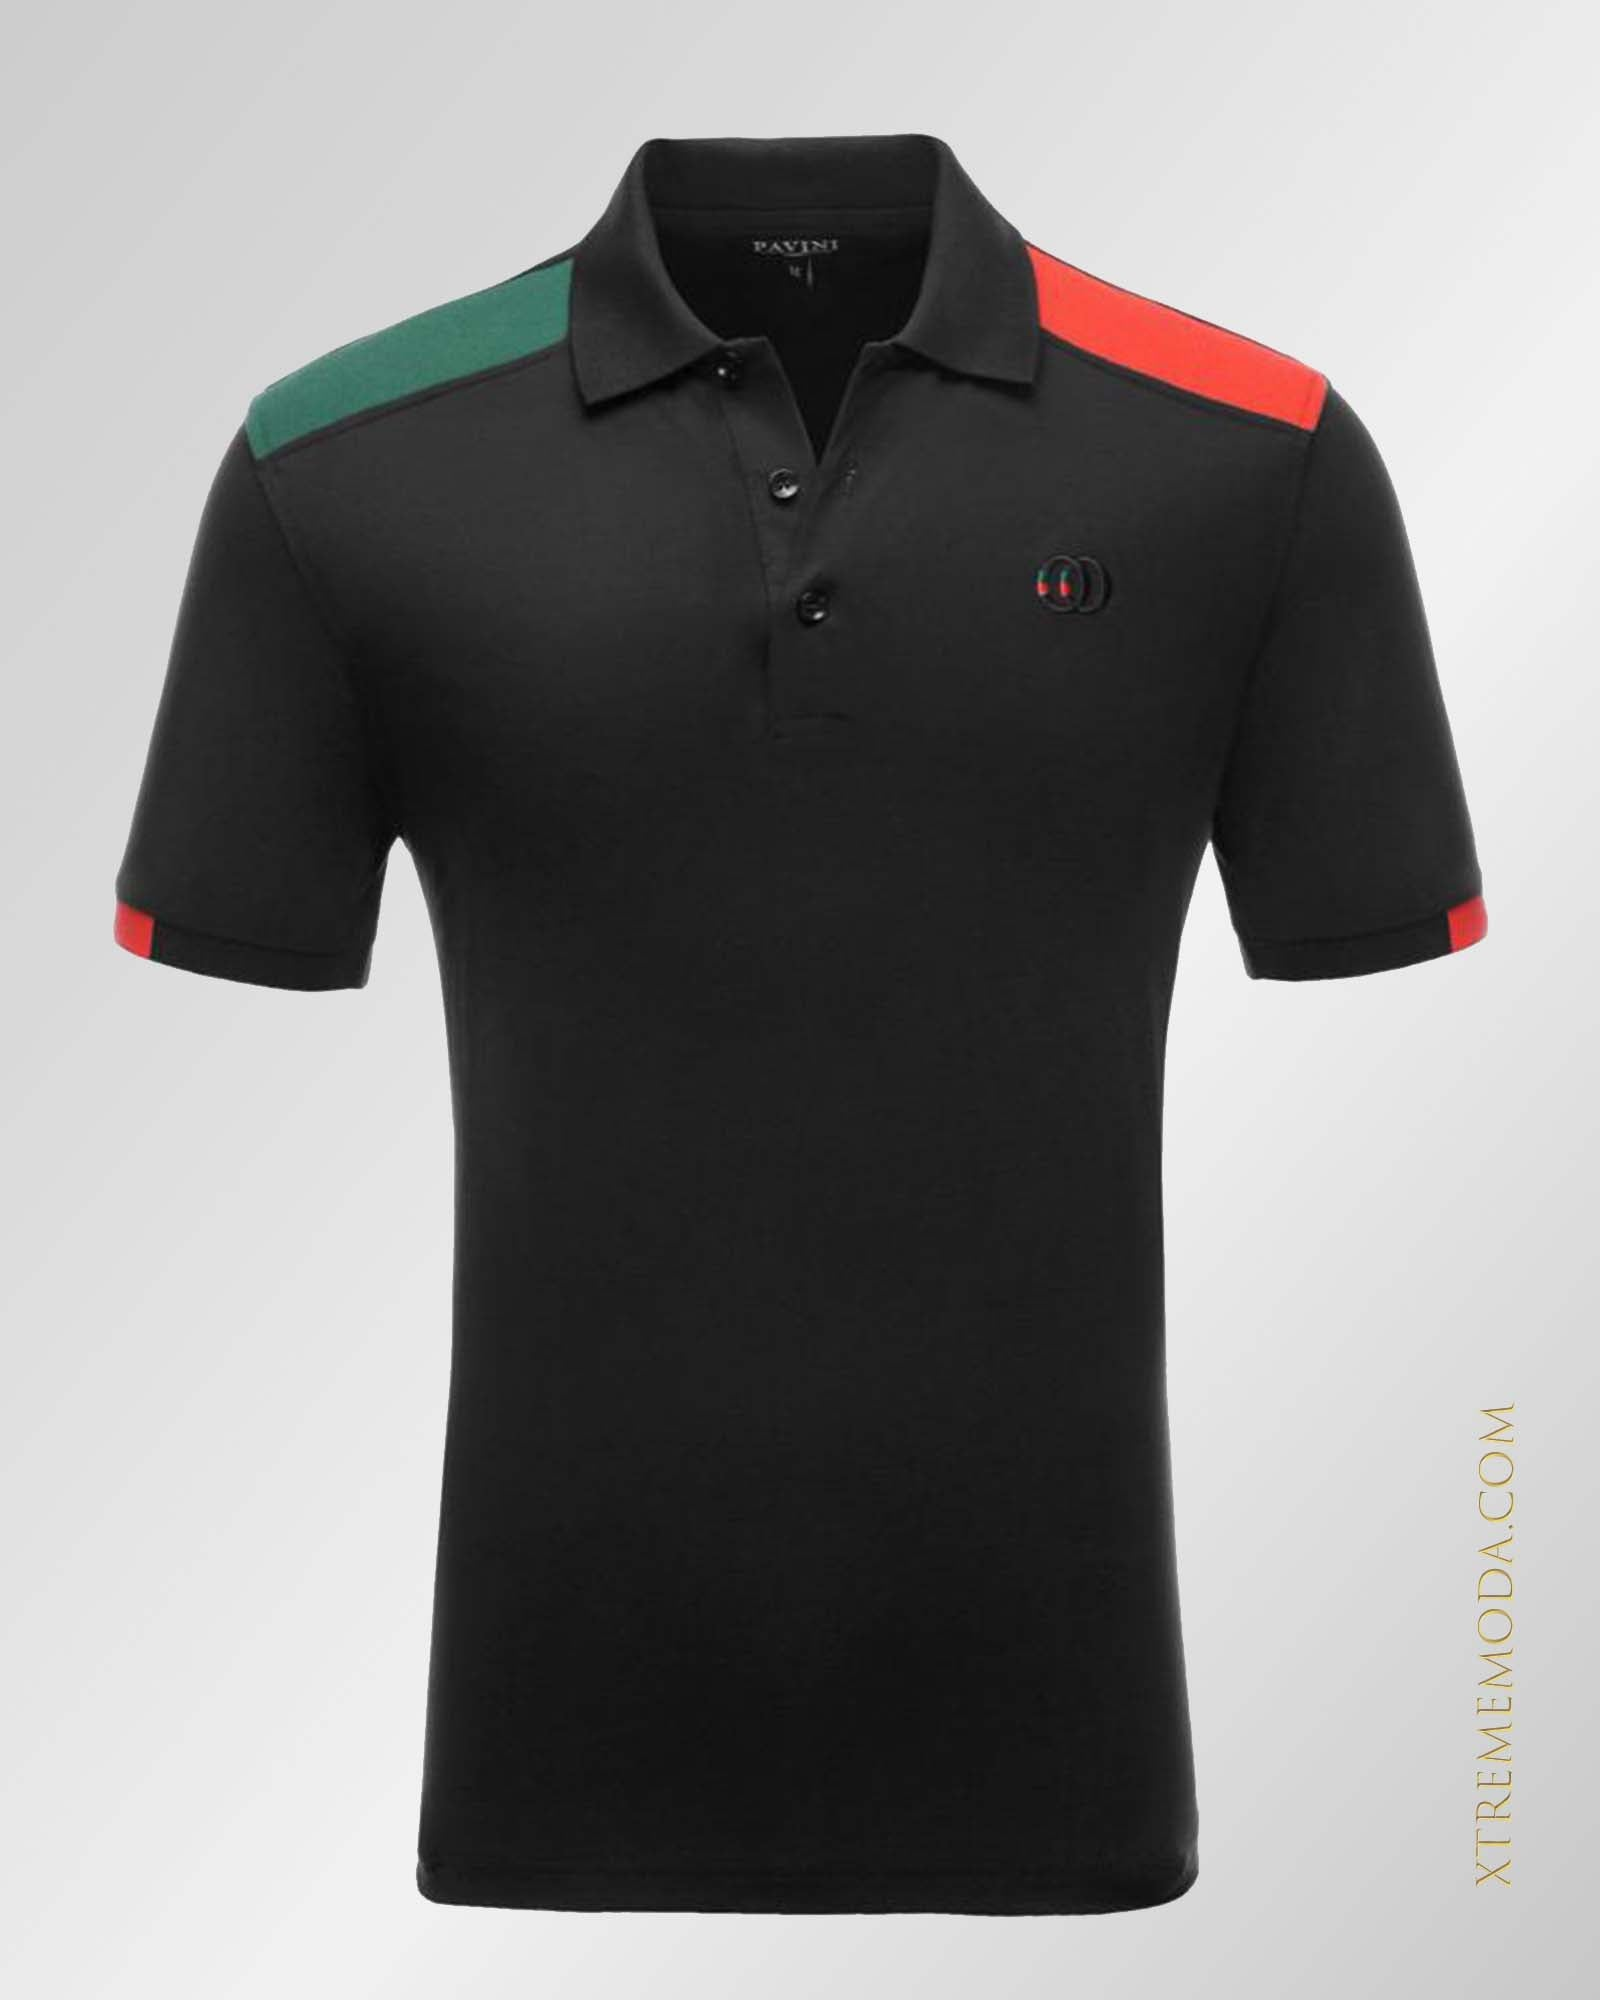 slim fit jersey cotton  polo shirt Black